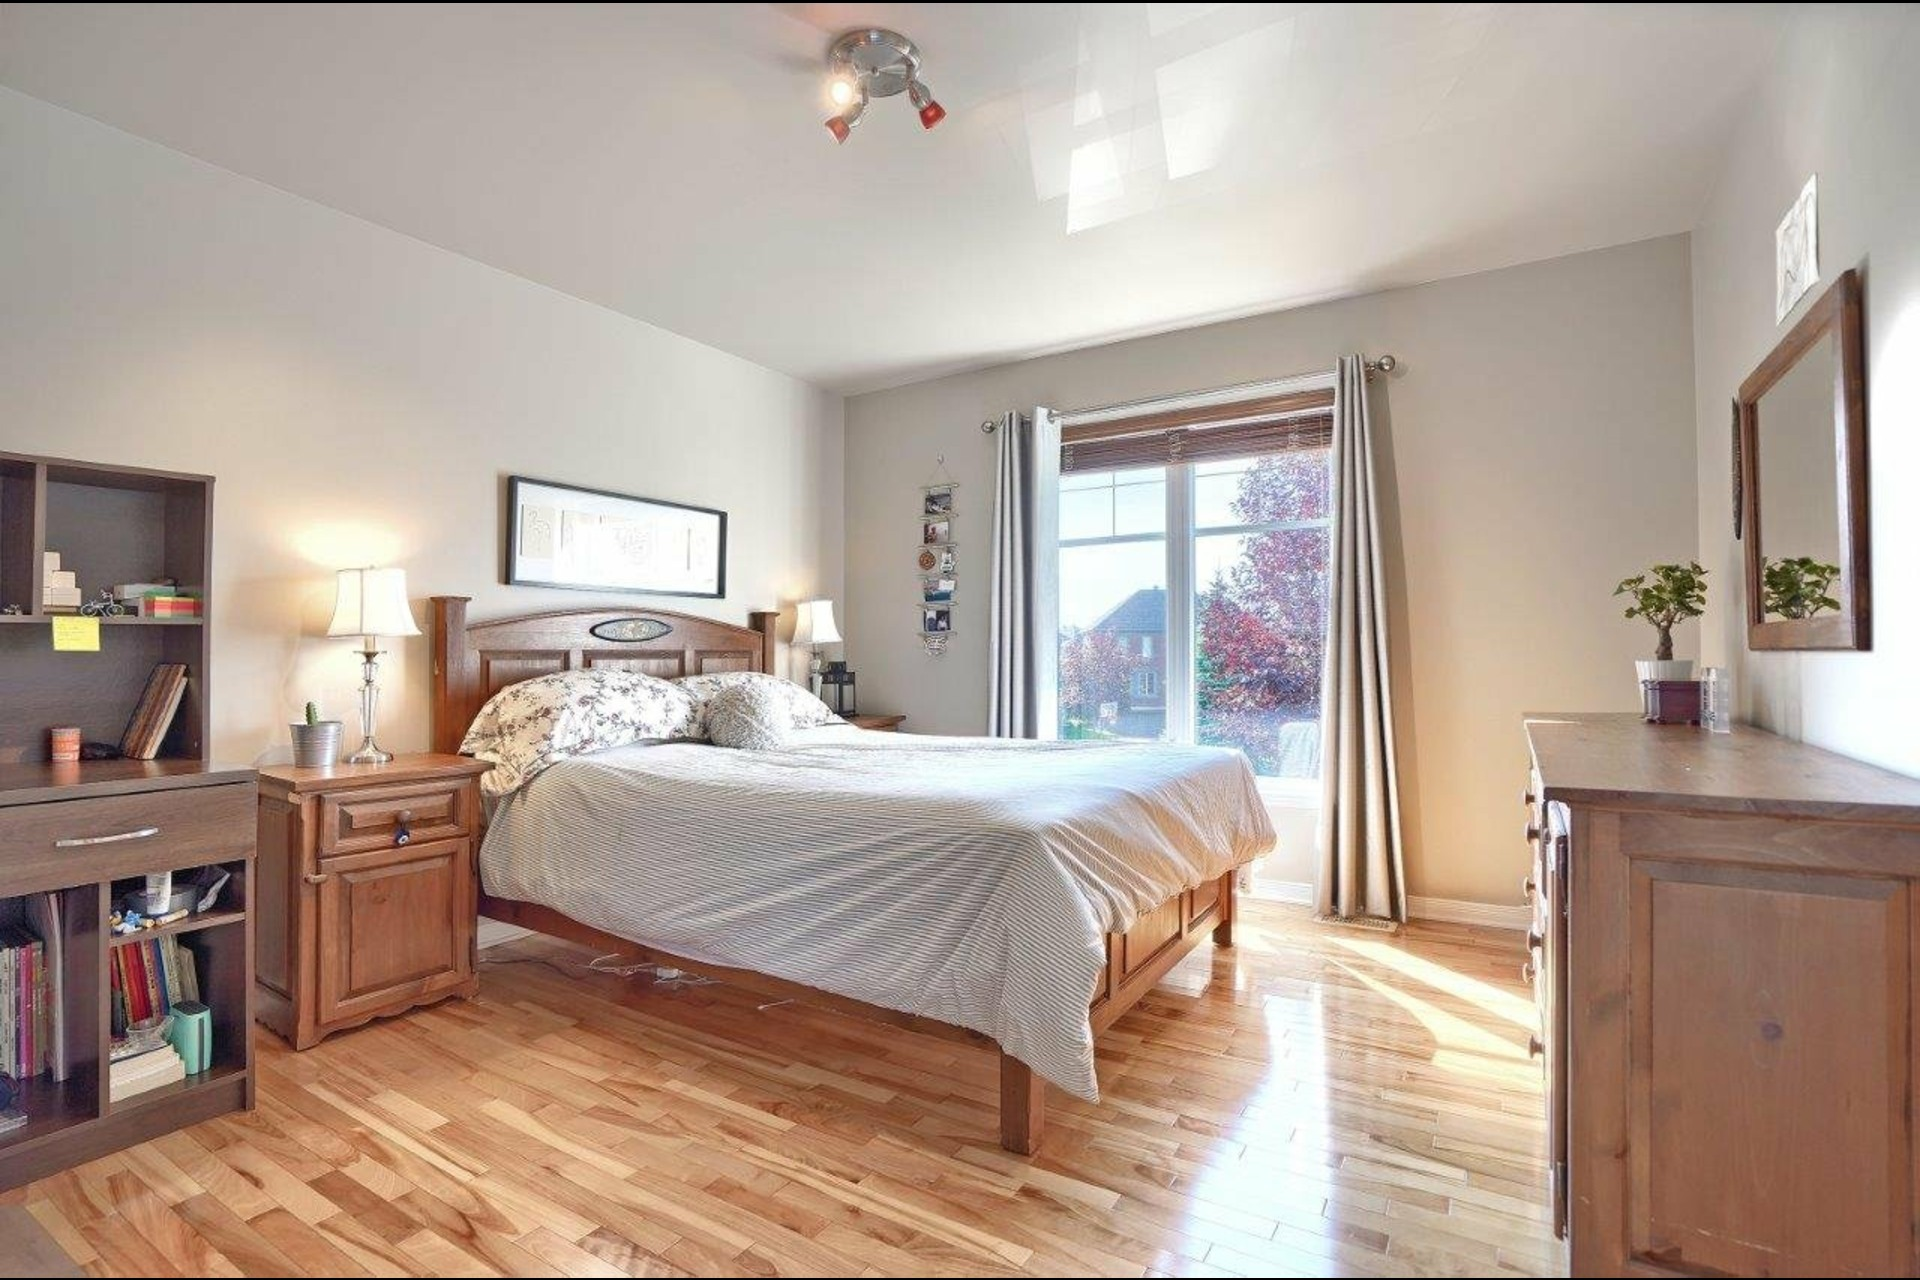 image 7 - House For sale Brossard - 10 rooms